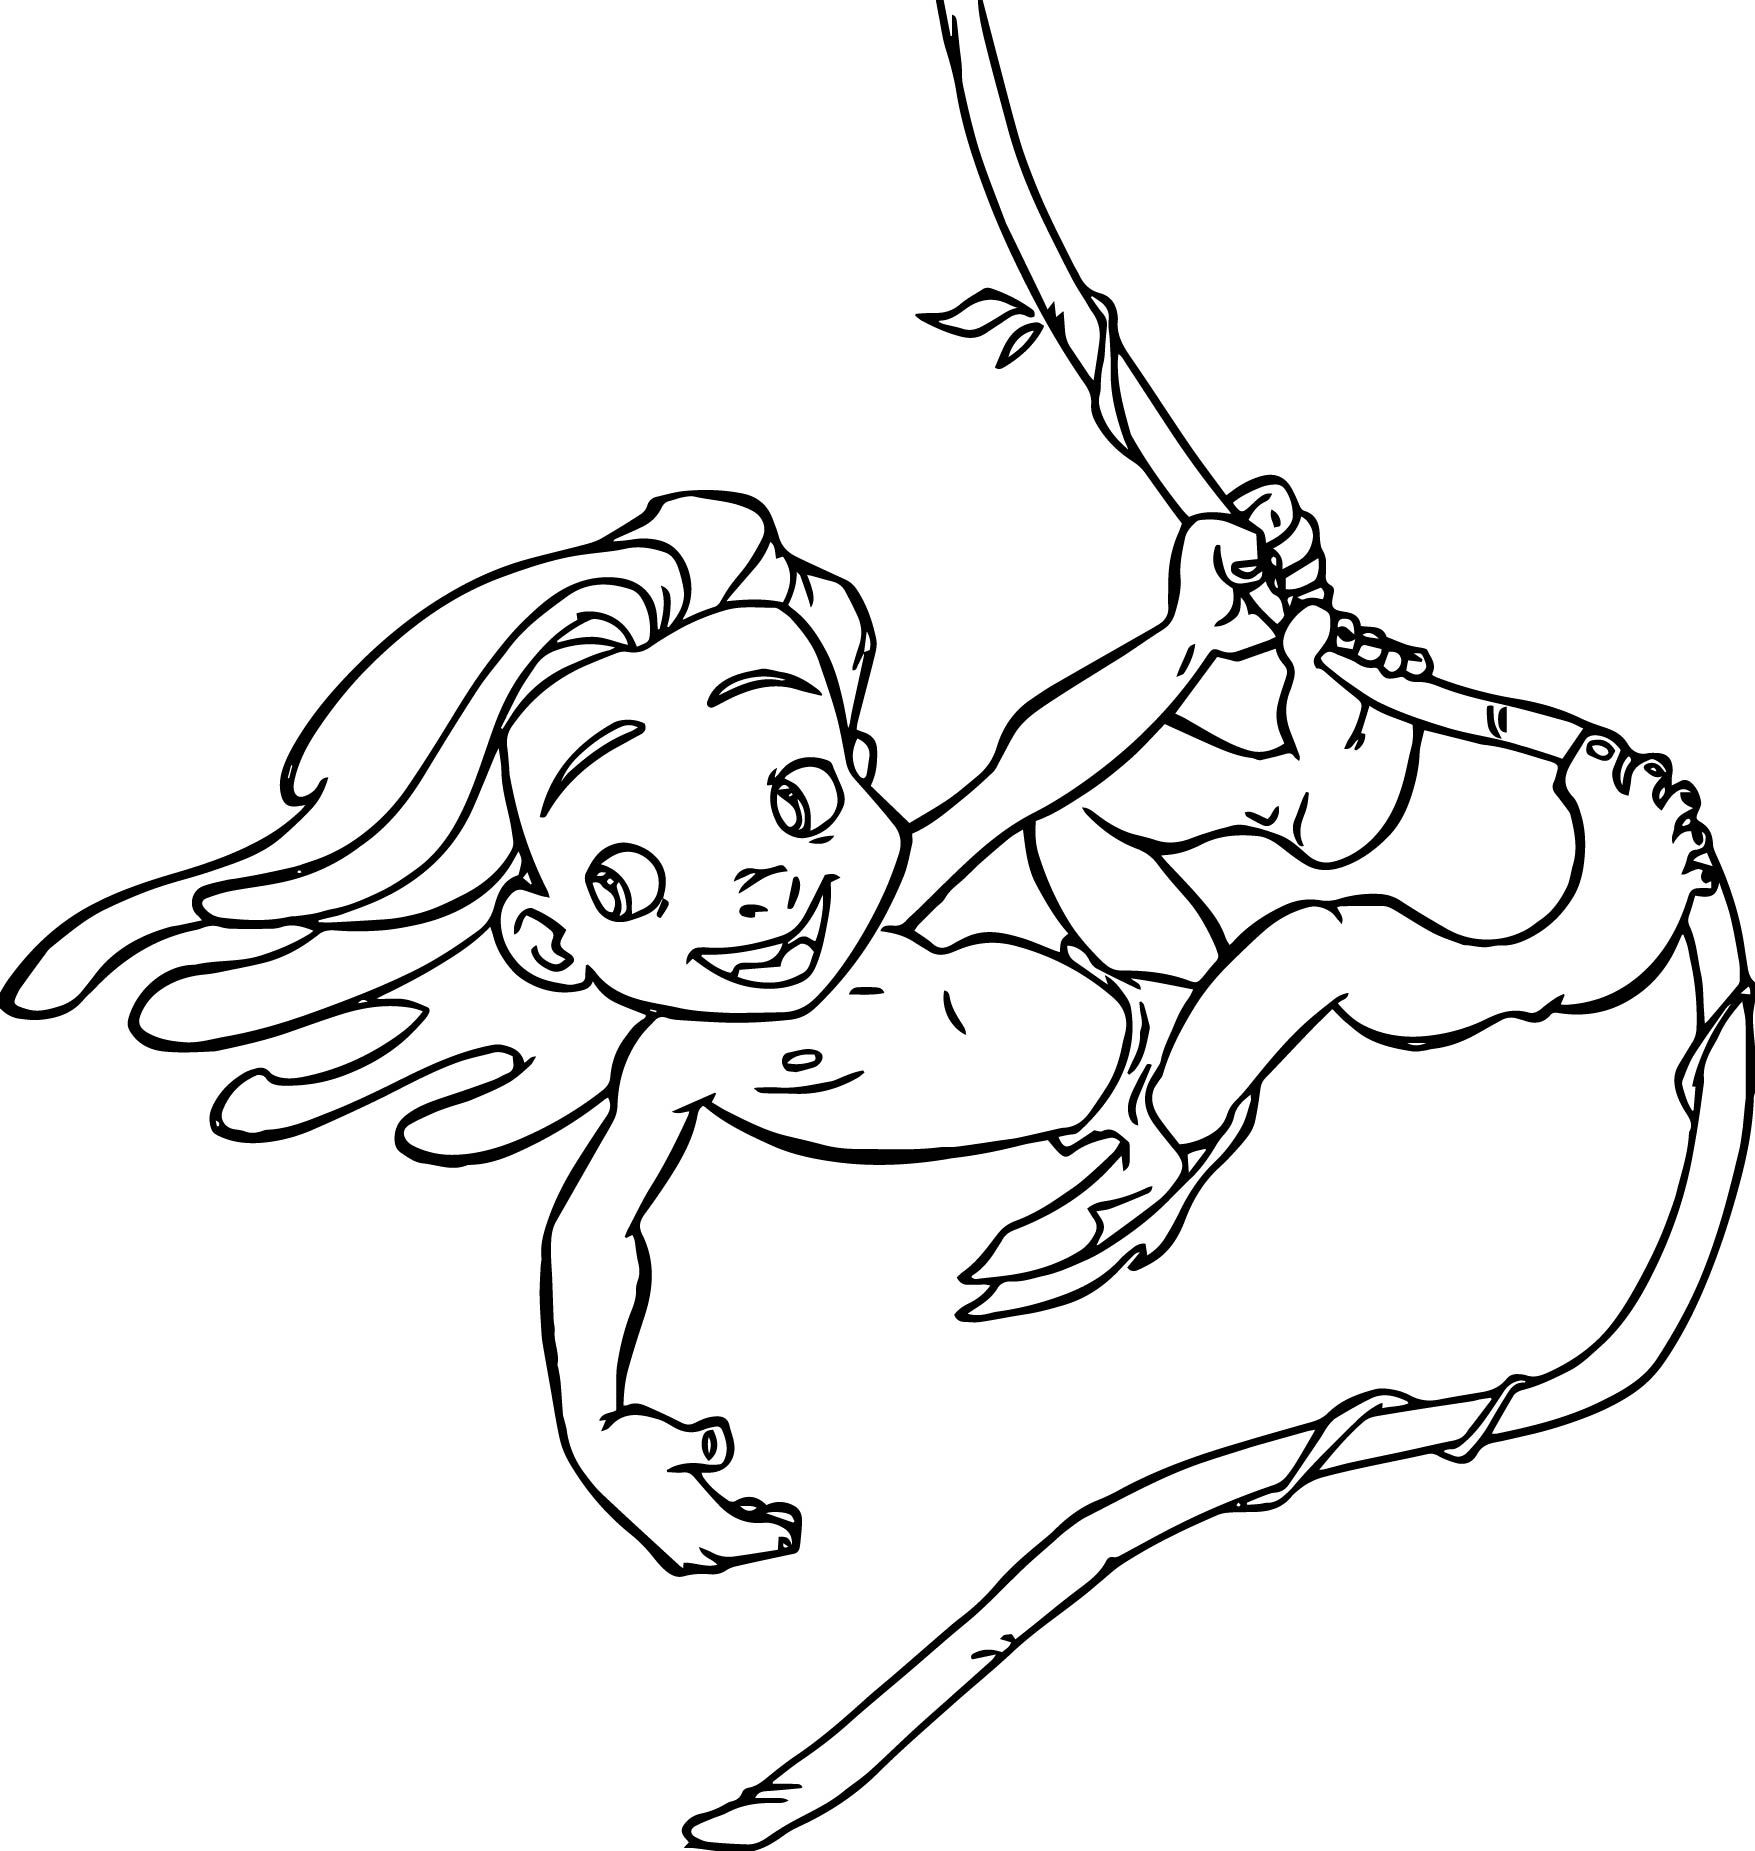 Awesome Young Tarzan Ivy Coloring Pages Coloring Pages Disney Coloring Pages Tarzan Tattoo